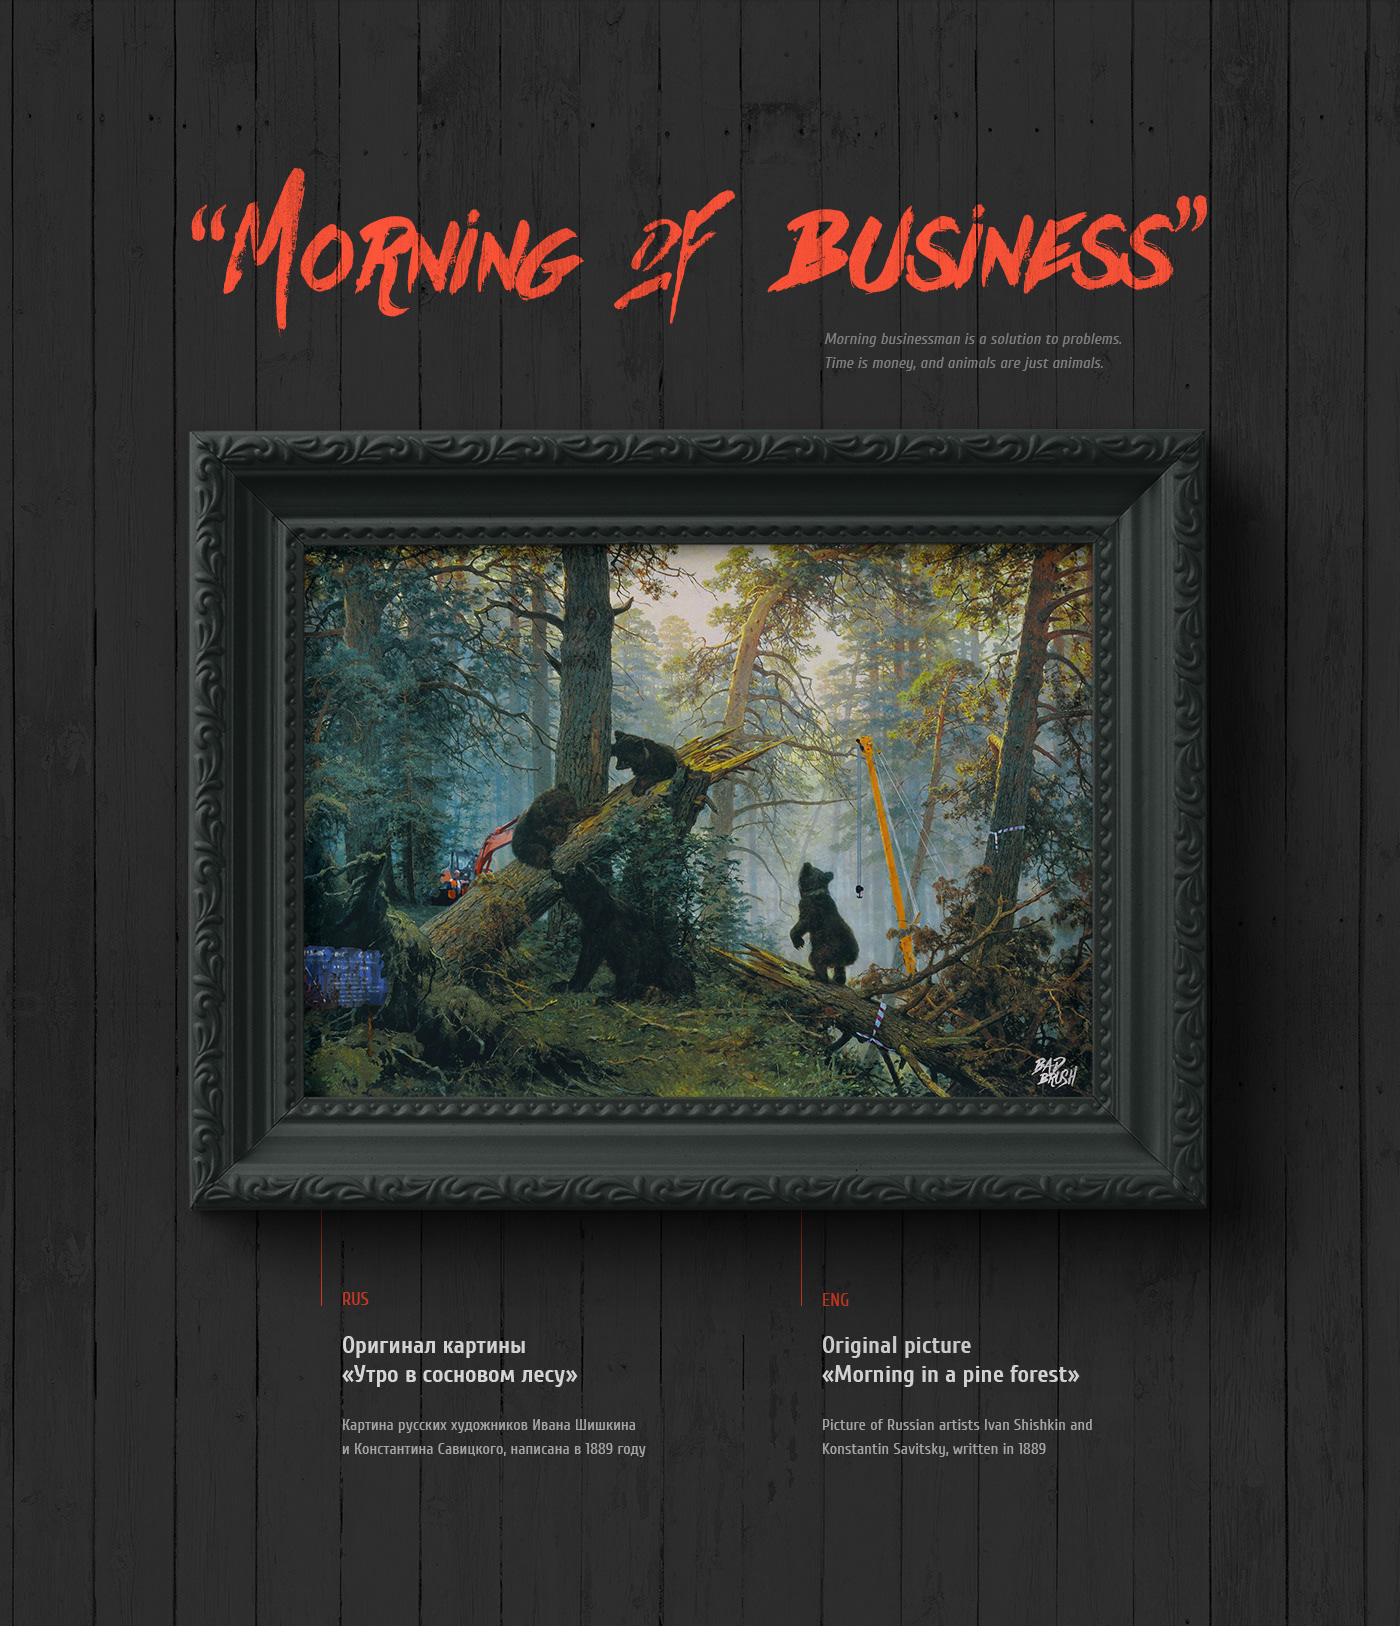 Morning of Business (Morning in a pine forest)